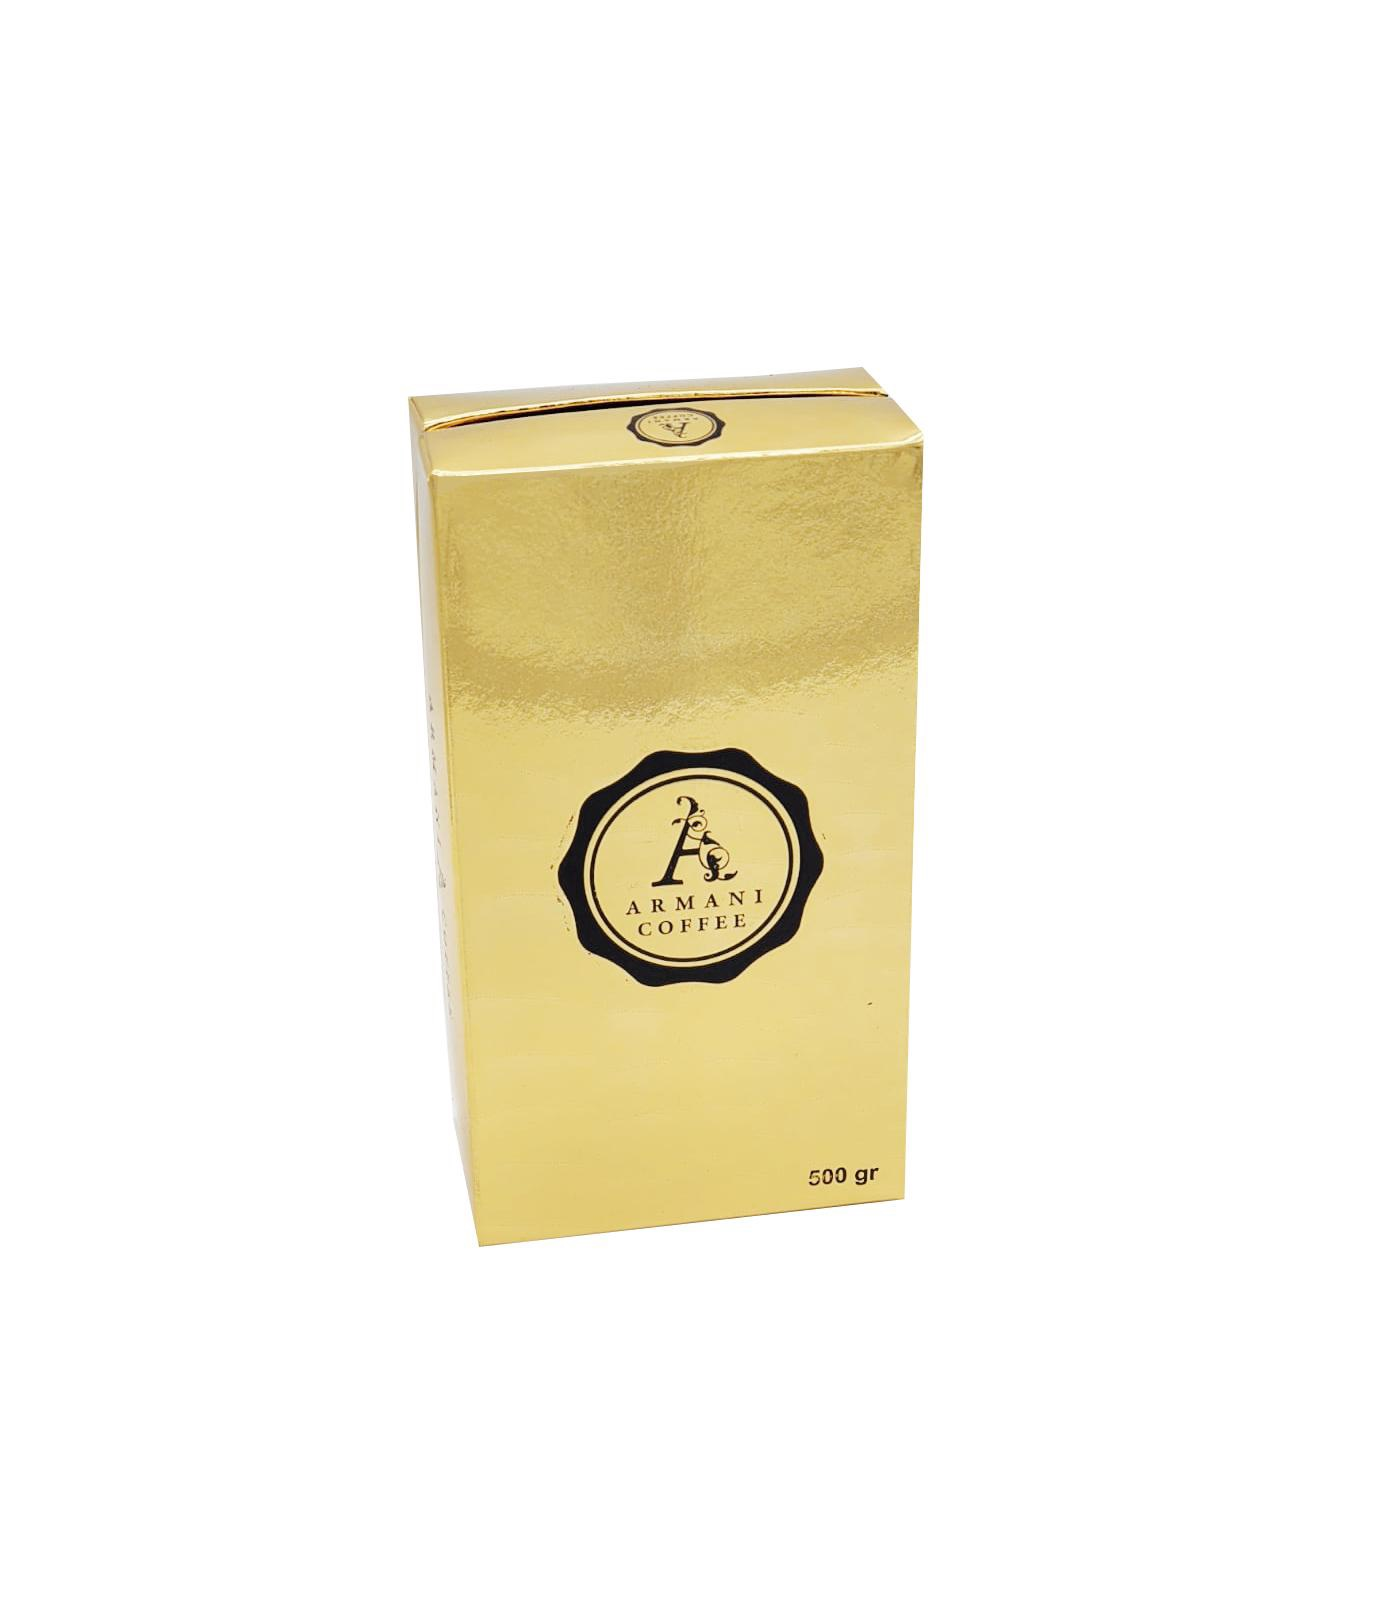 Buy Armani Coffee 500G